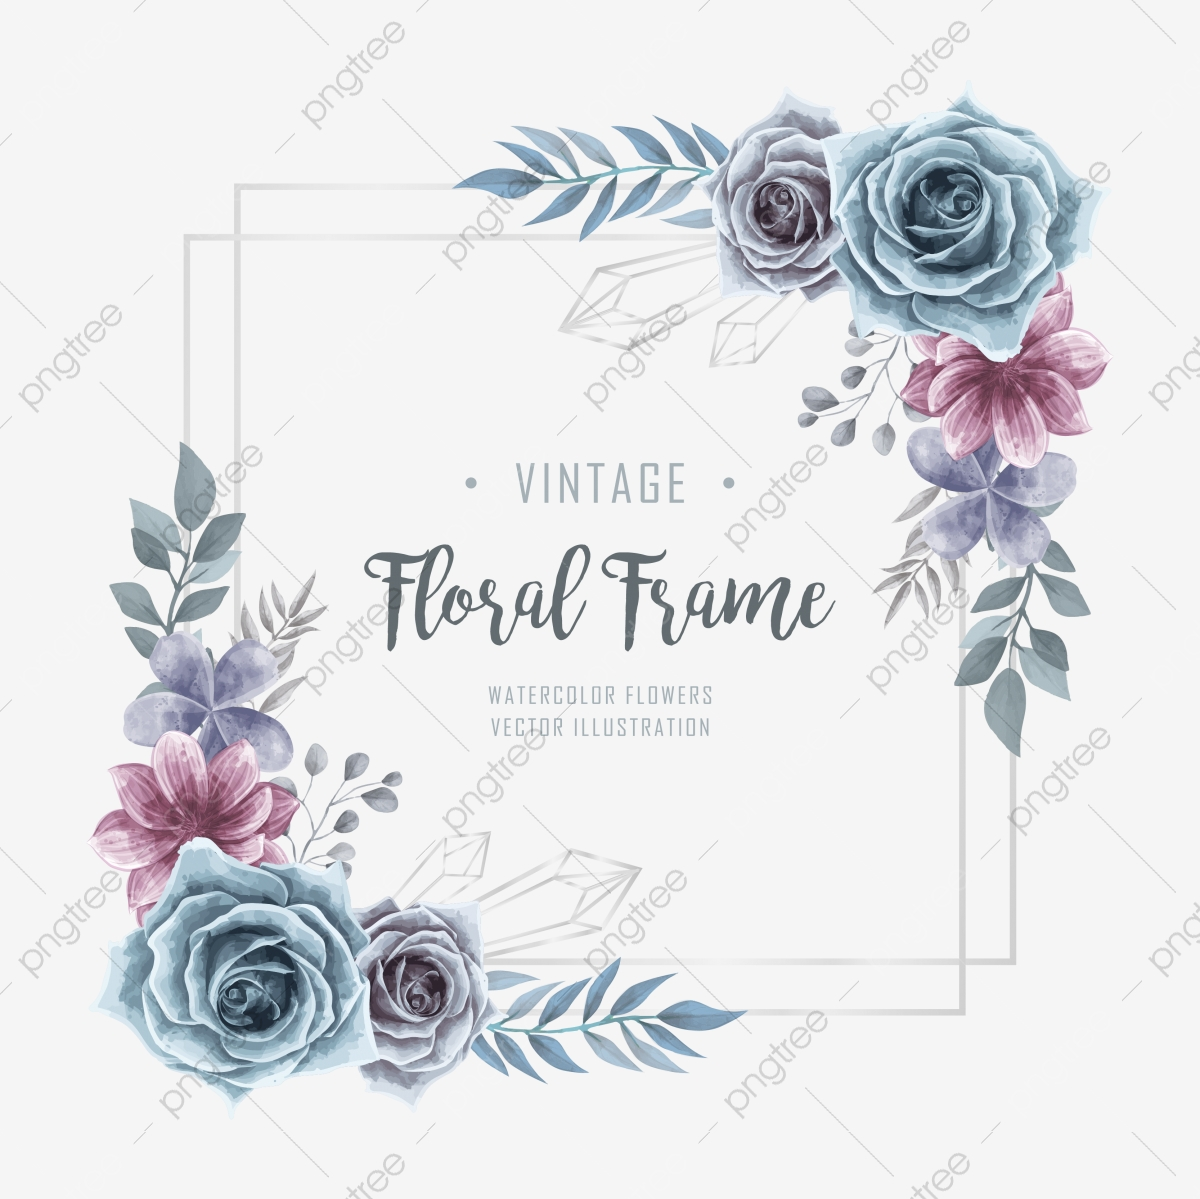 Flower Frame Png Images Vector And Psd Files Free Download On Pngtree